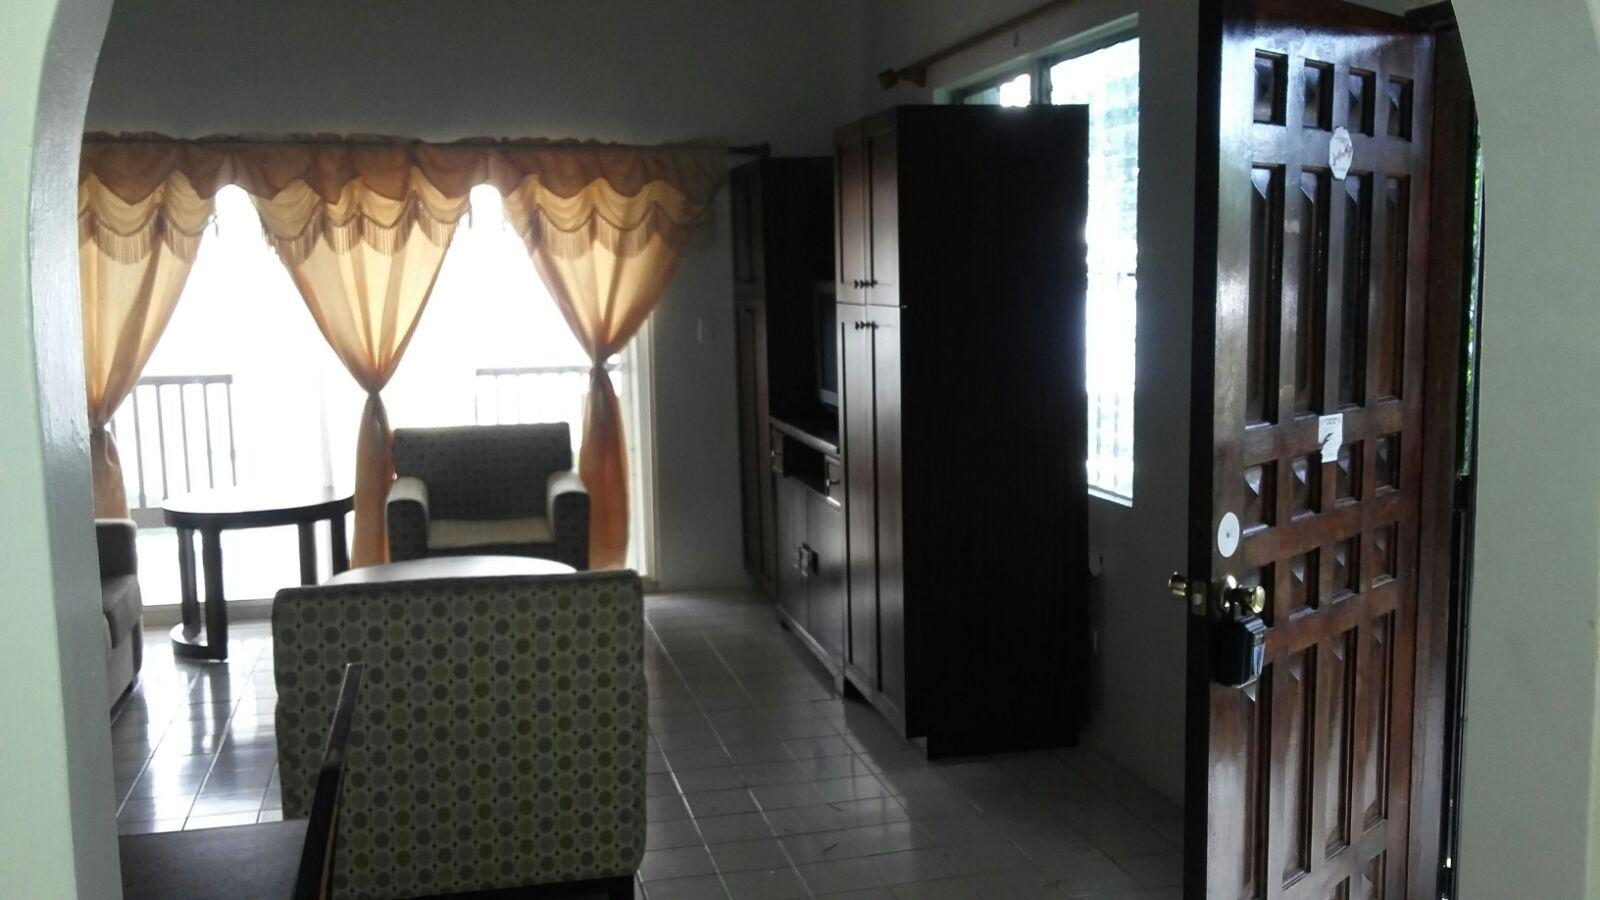 Condominium for Sale at Frenchman's Heights A-4 Frenchman Bay FB Frenchman's Heights A-4 Frenchman Bay FB St Thomas, Virgin Islands 00802 United States Virgin Islands